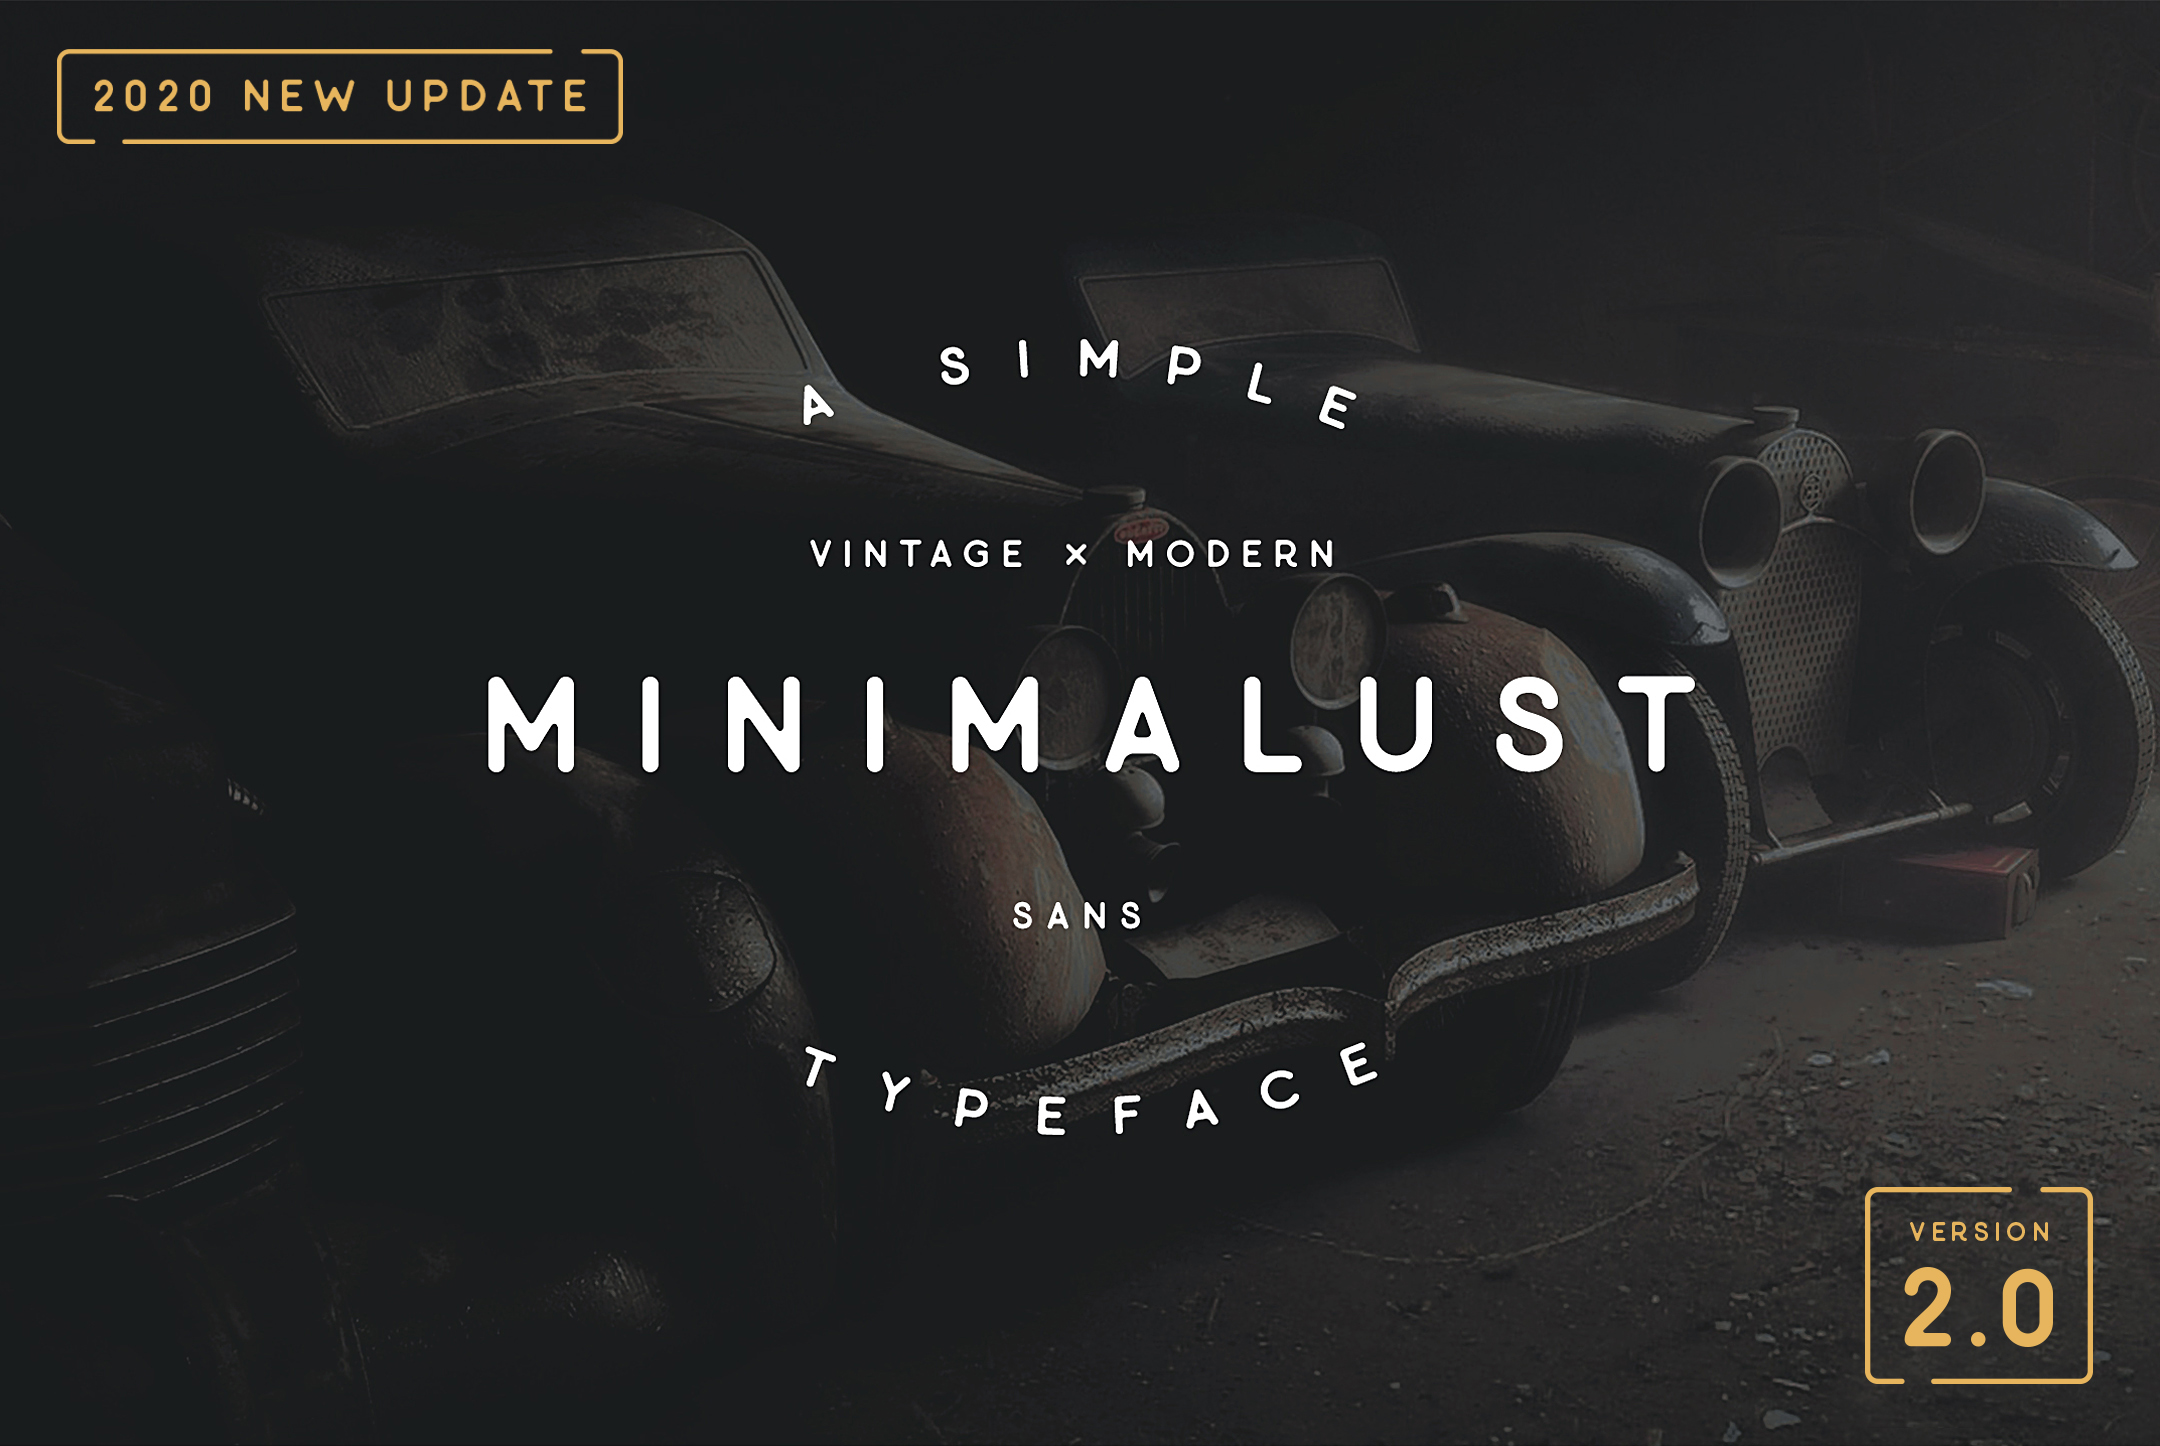 An example of a sans serif font style called Minimalust